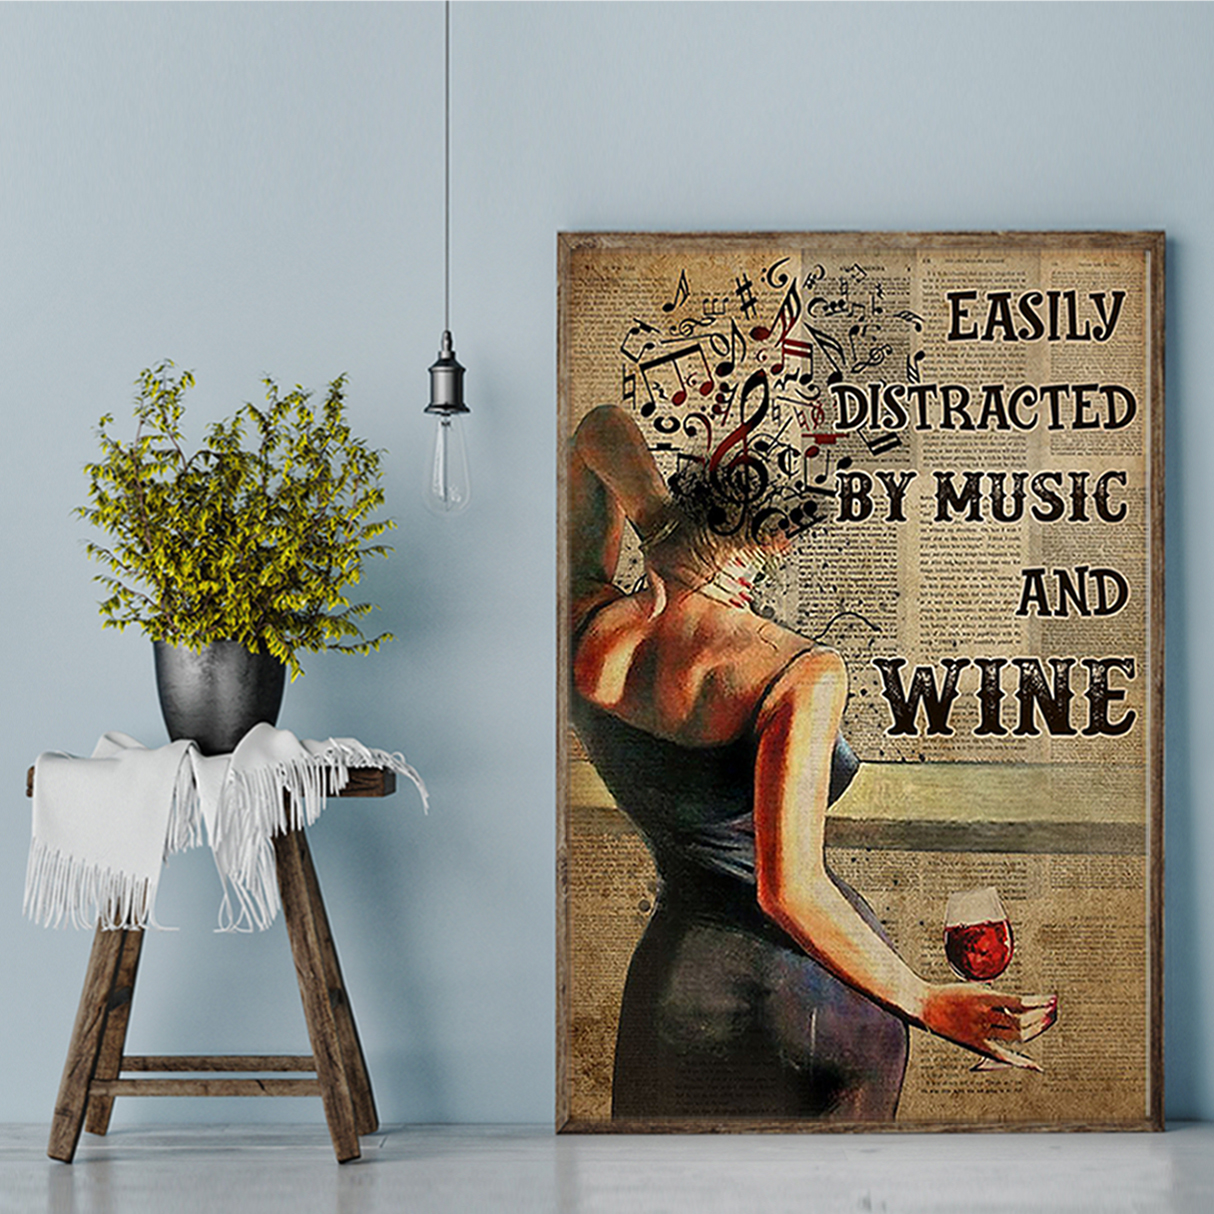 Easily distracted by music and wine poster A1